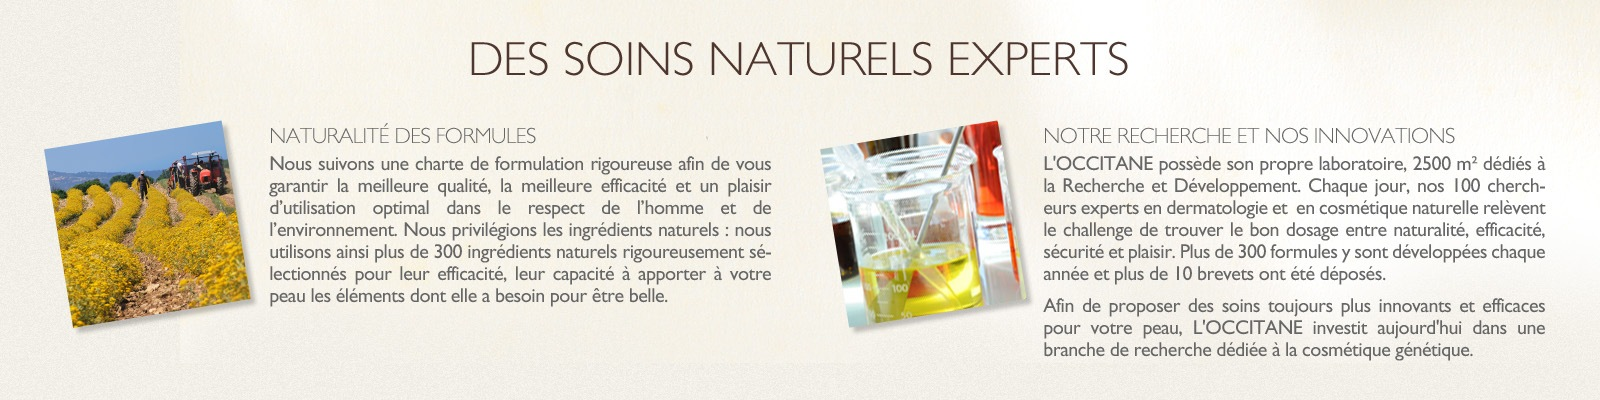 Soins experts - L'Occitane